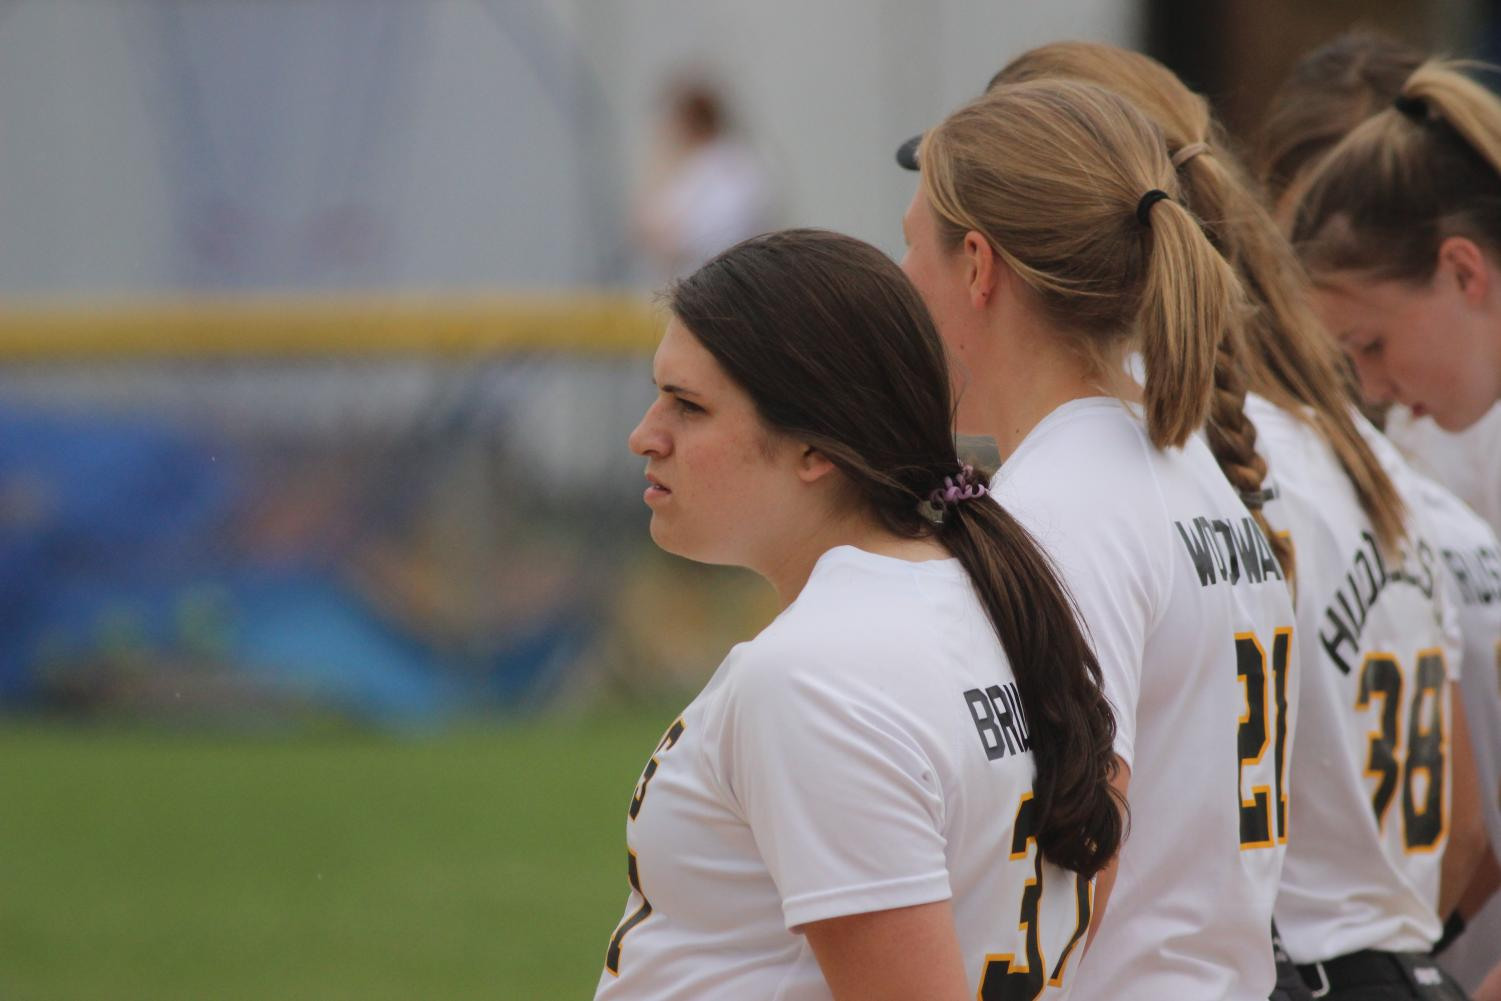 The softball girls watch the opposition during warmups.